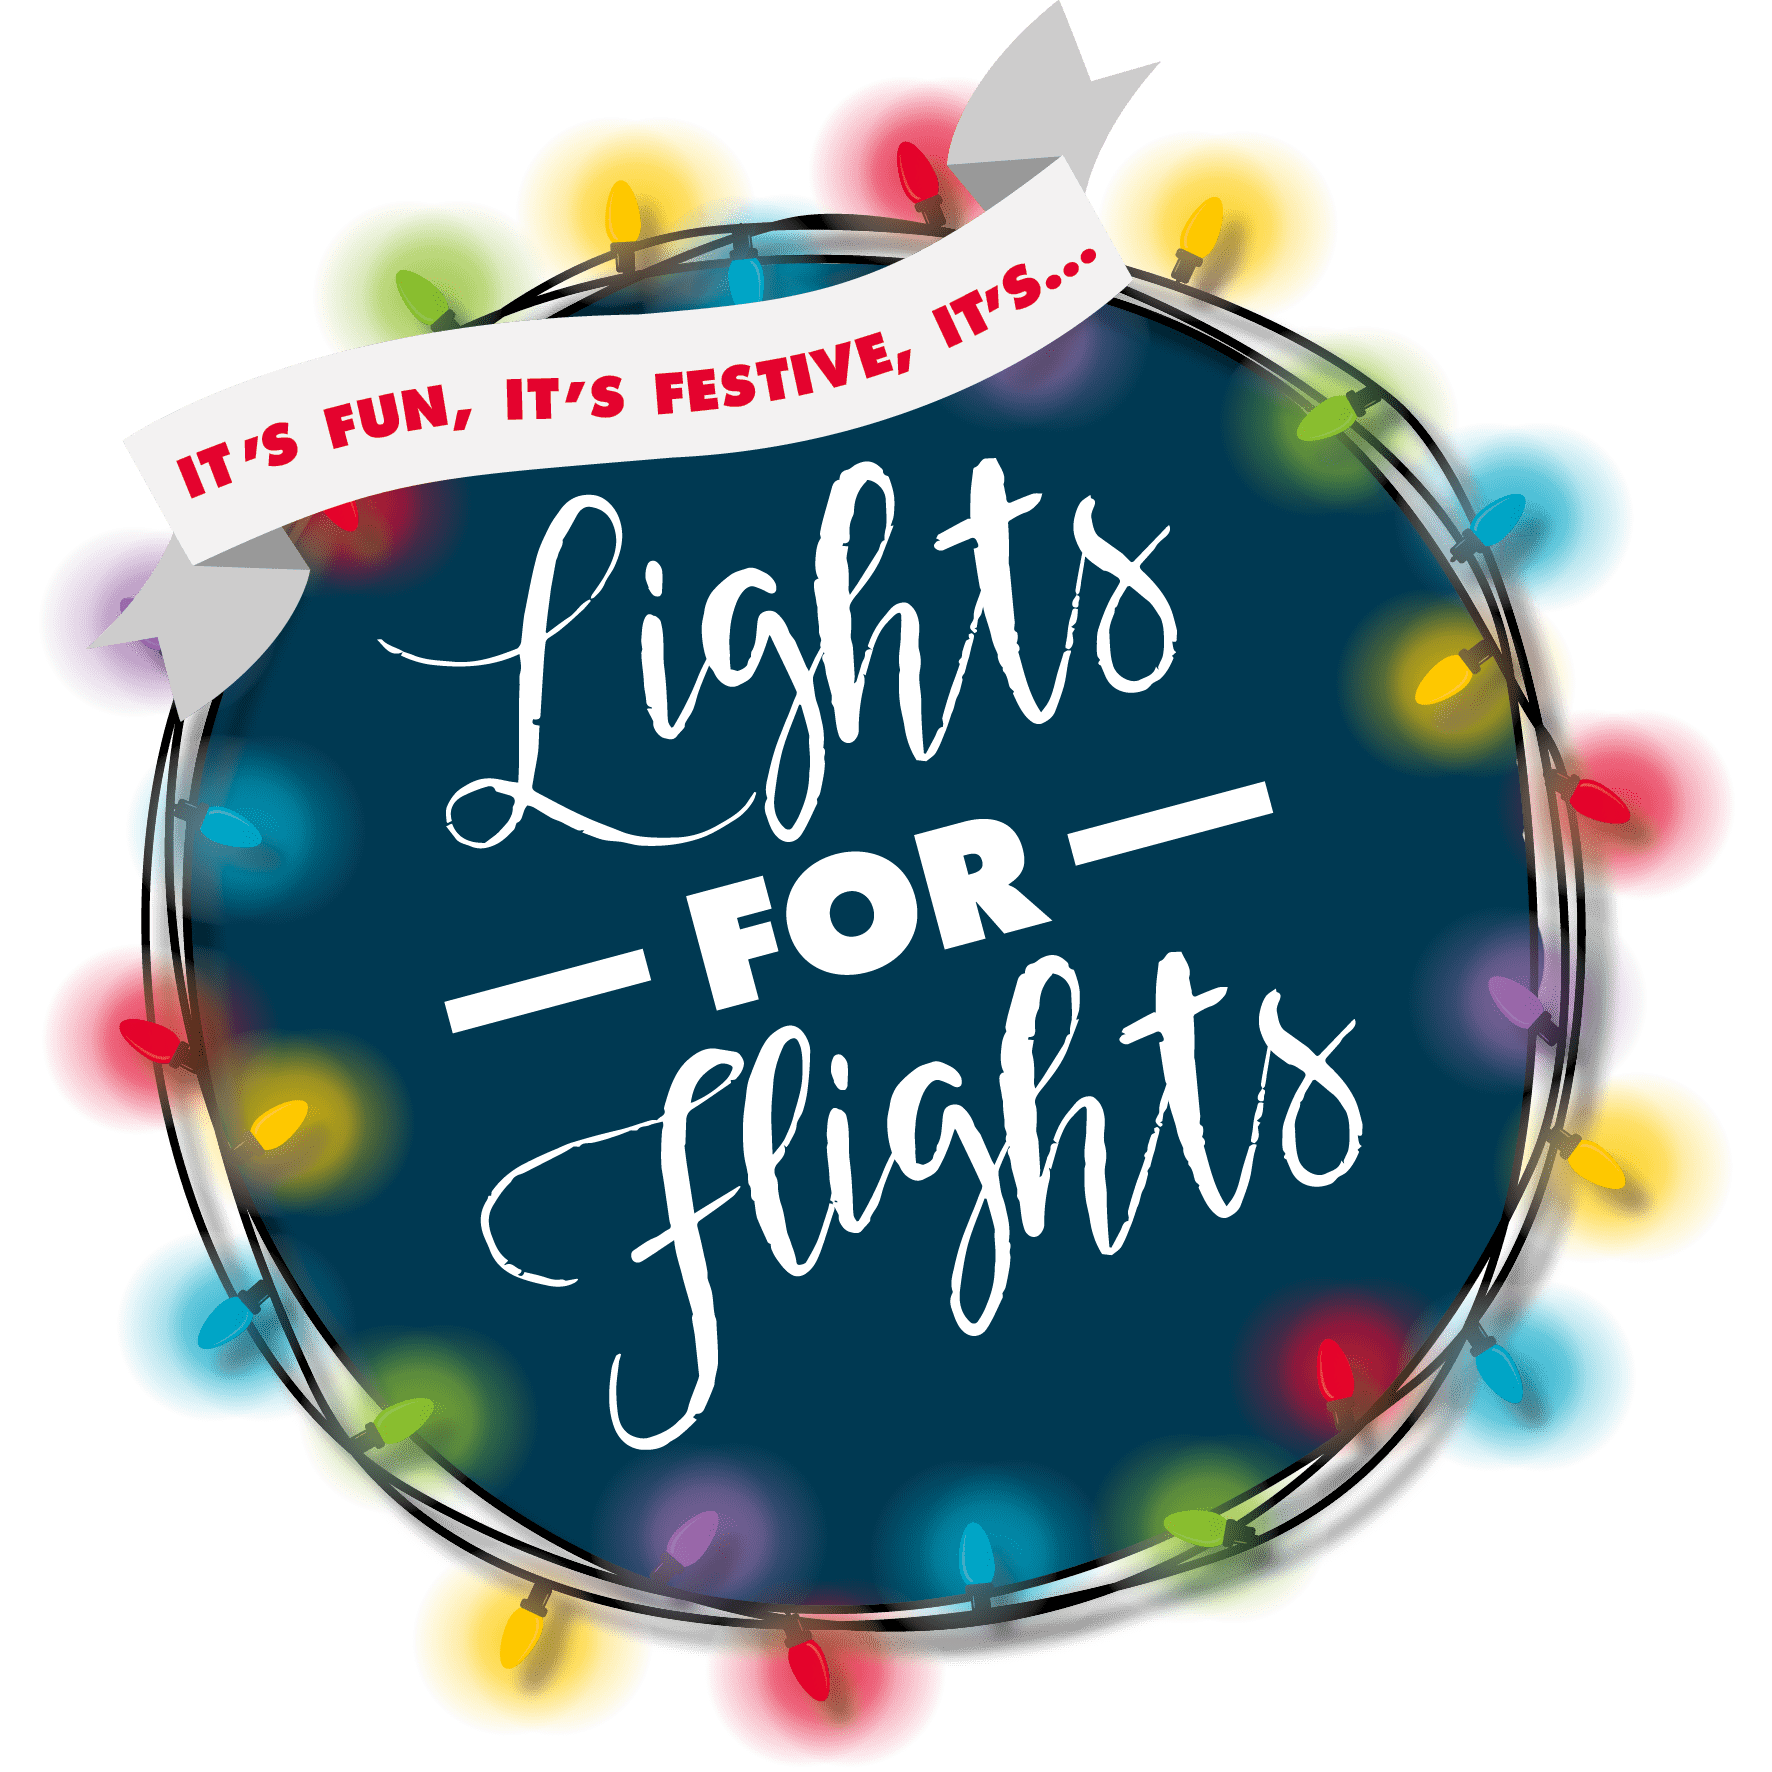 Flights for Lights